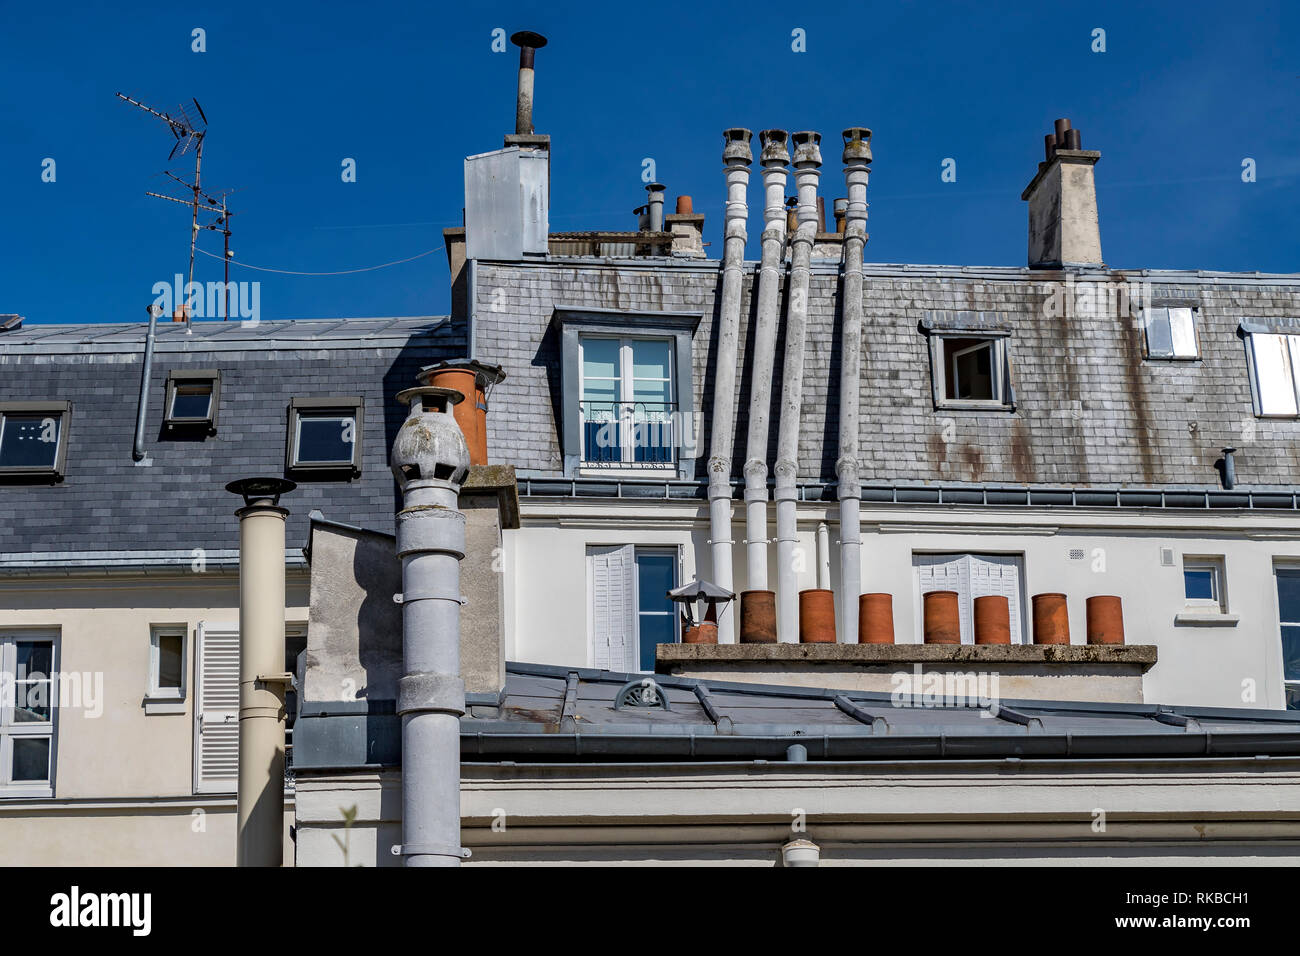 Paris building with attic rooms, tall chimney stacks and grey slate roof tiles  , Paris, France - Stock Image